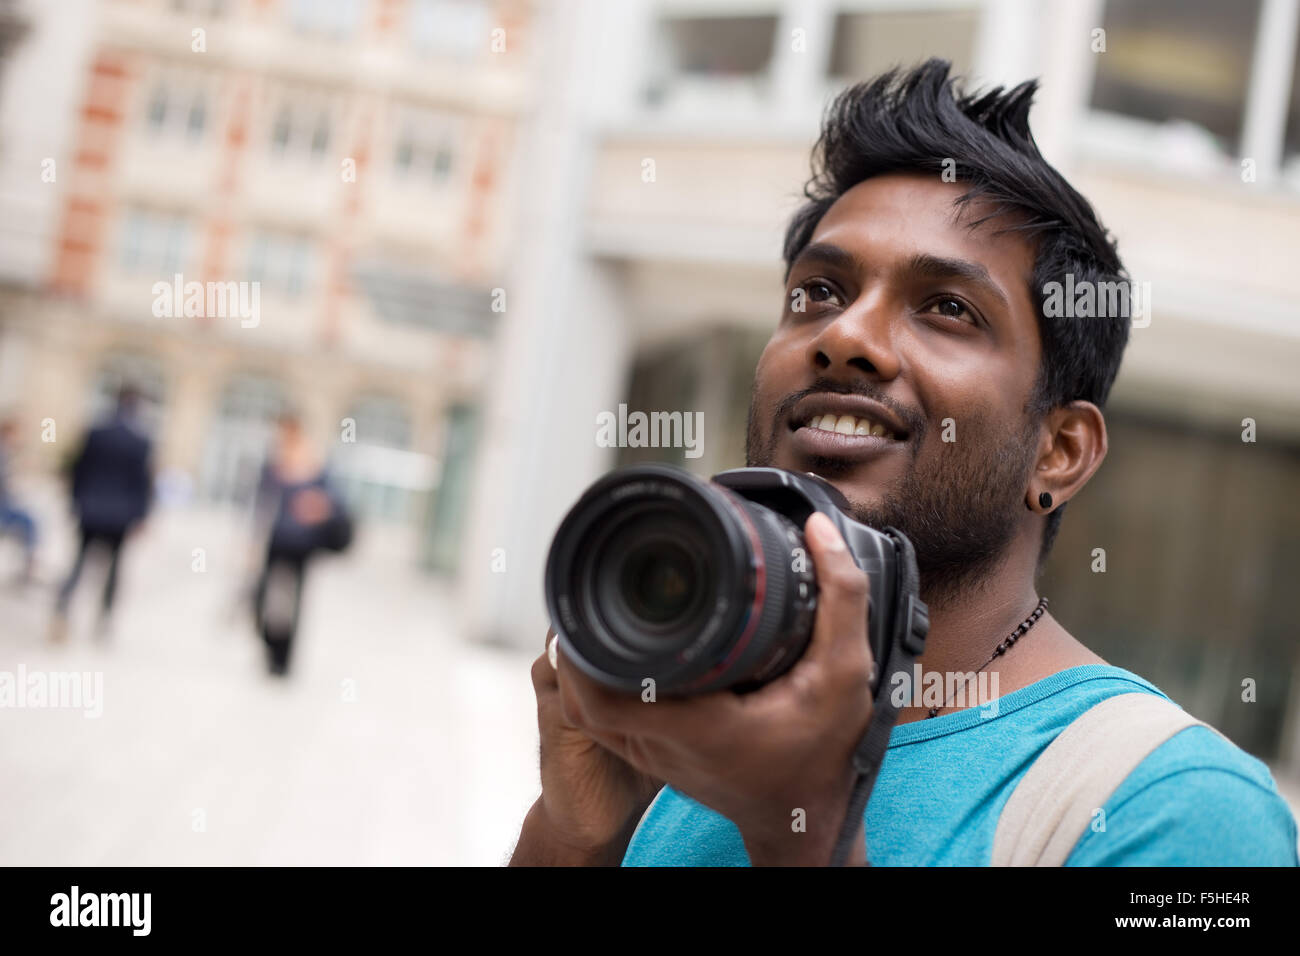 young indian man on holiday taking photos - Stock Image